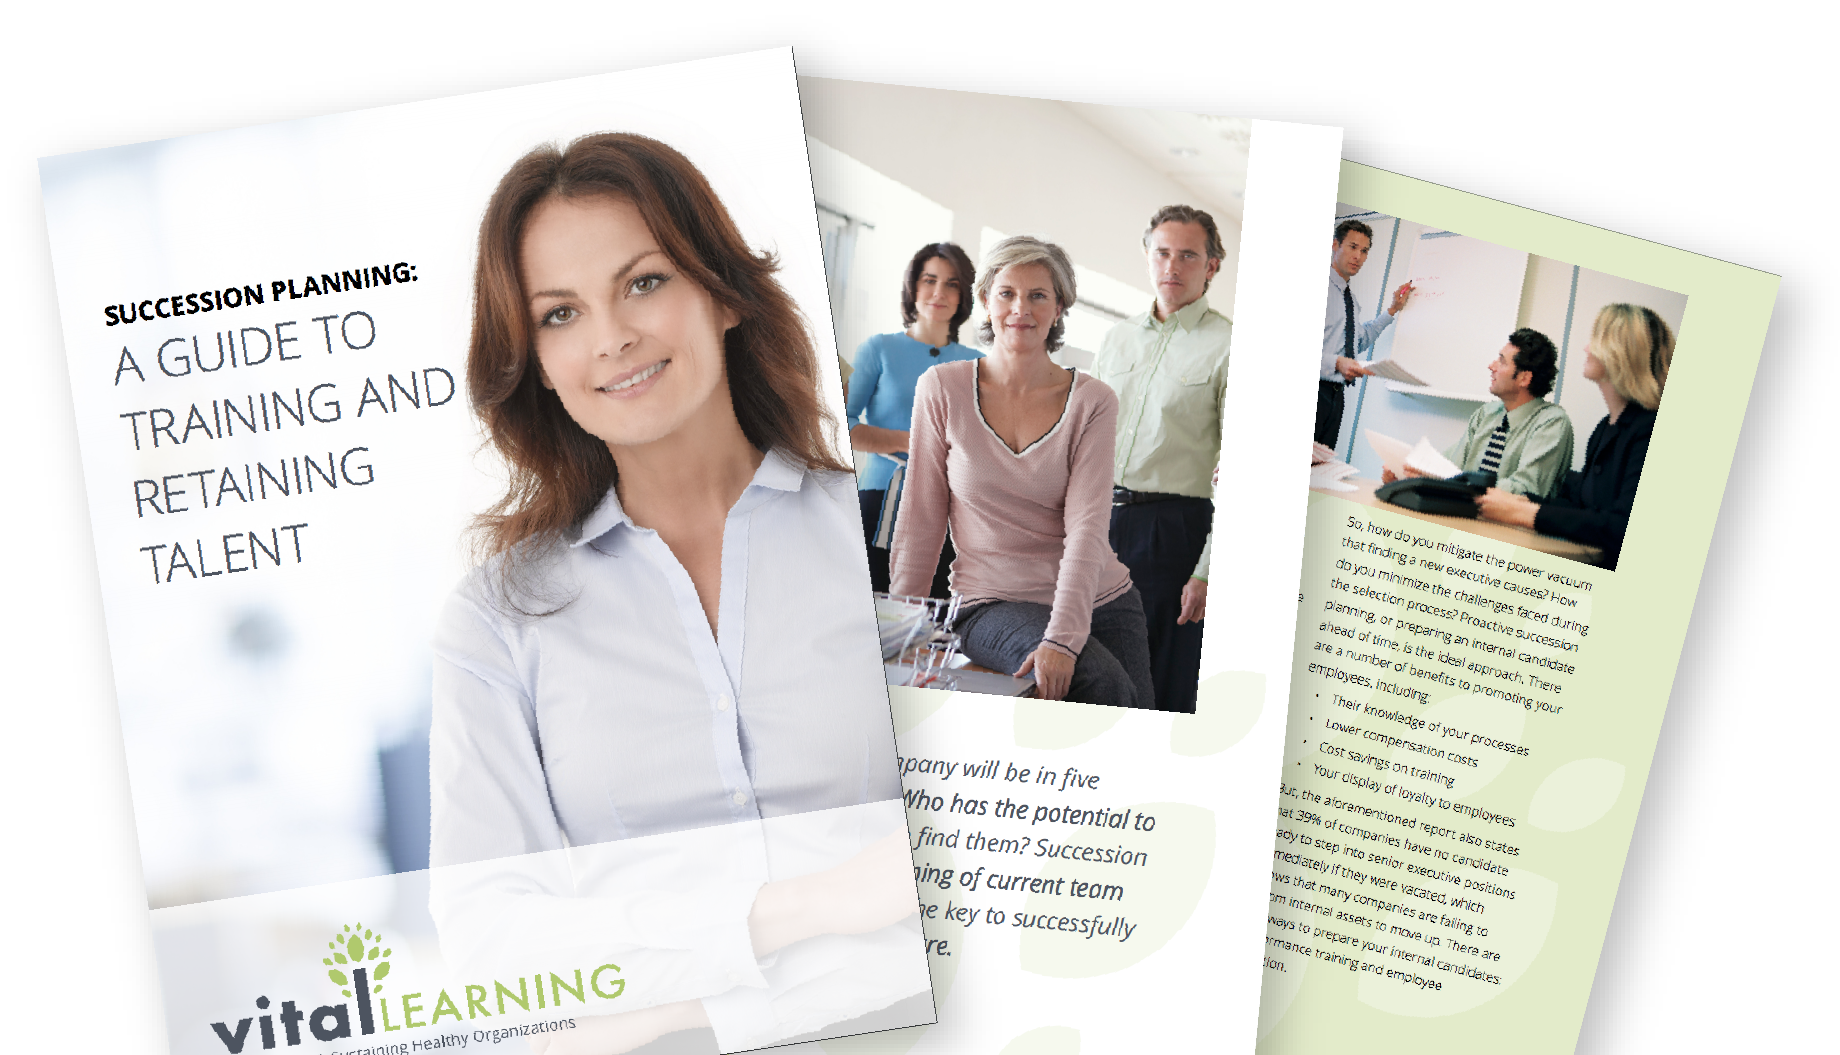 A guide to training and retaining talent free leadership training ebook